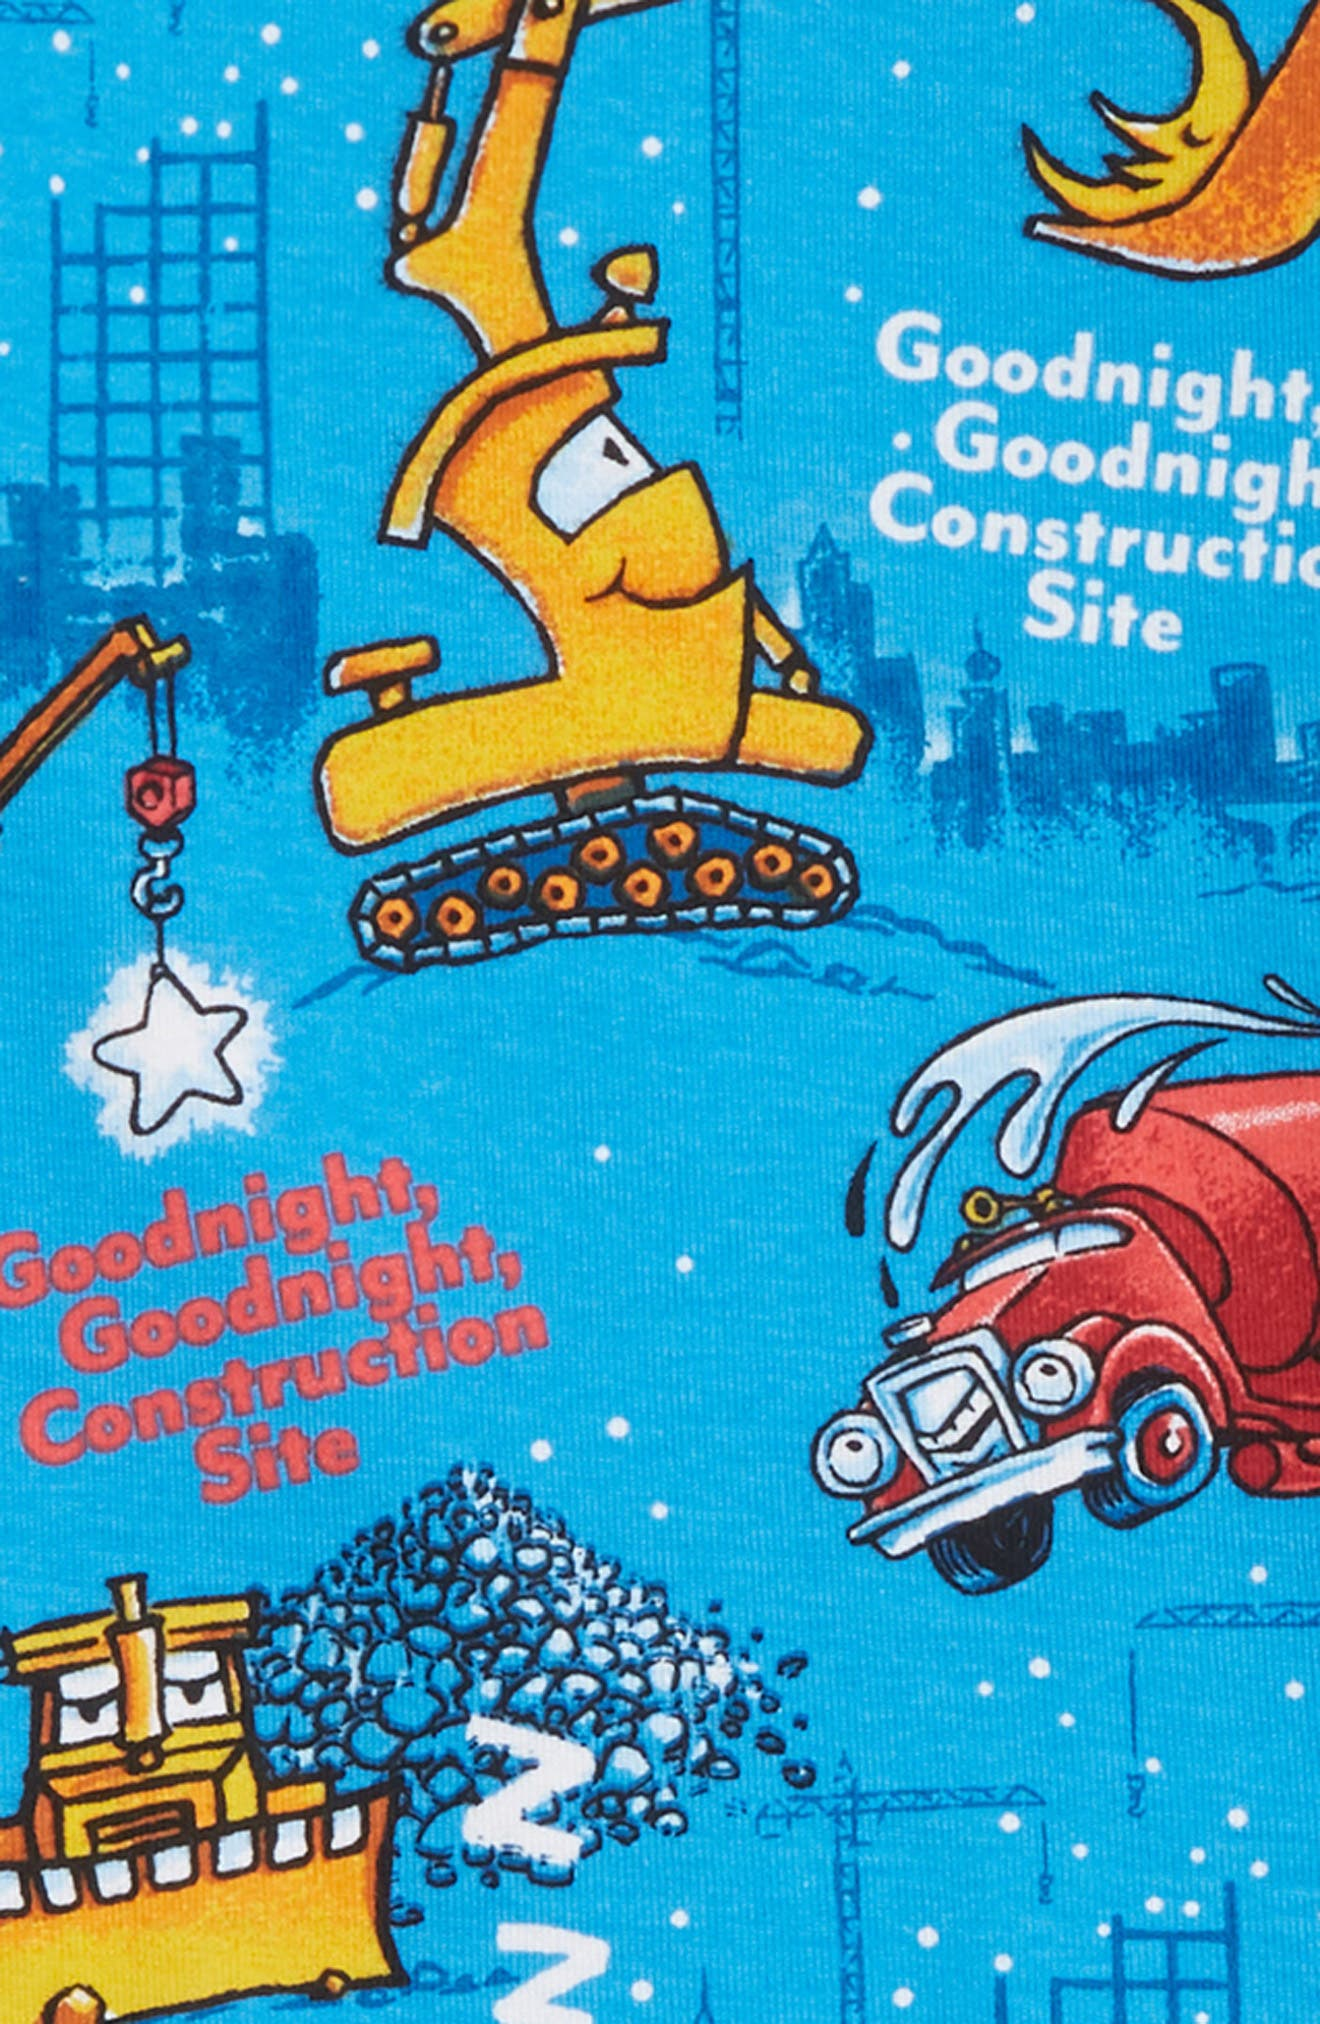 Goodnight Construction Site Fitted Two-Piece Pajamas & Book Set,                             Alternate thumbnail 2, color,                             BLUE